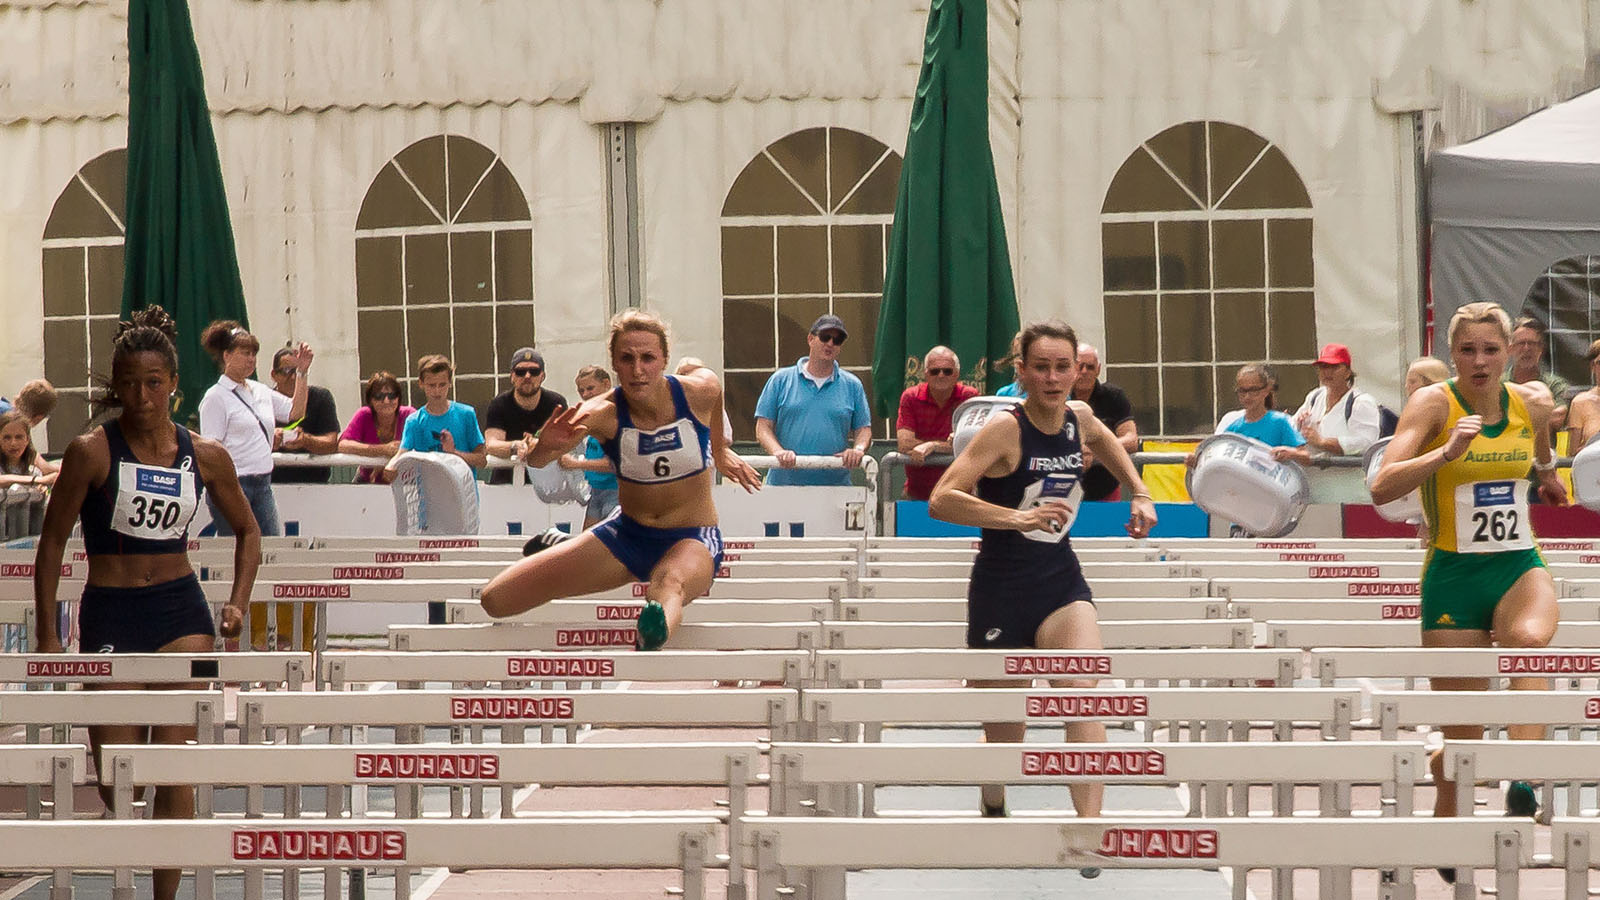 Four female hurdle sprinters are leaping over the hurdles along the race track.